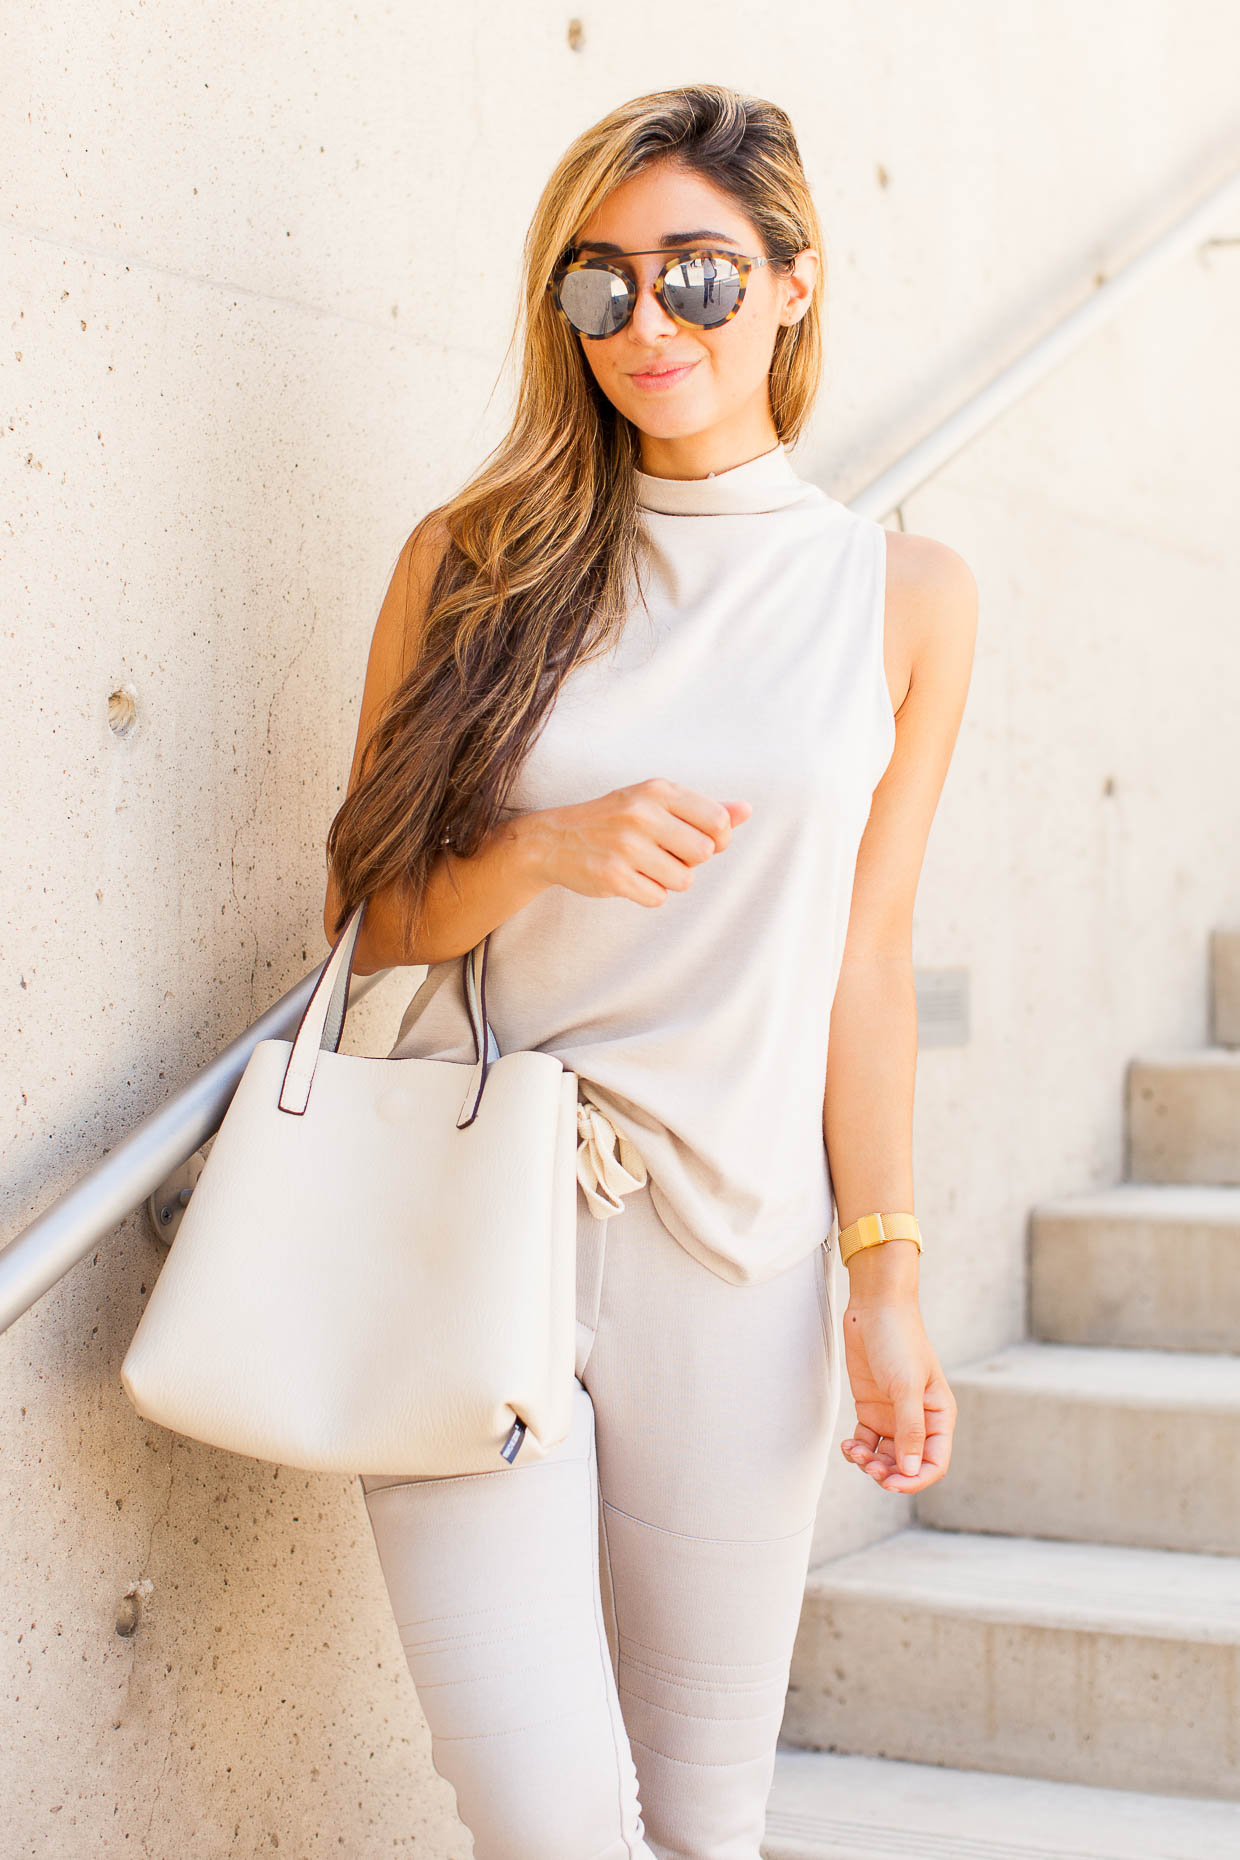 The Darling Detail is wearing a Leith Funnel Neck Tank, Sincerely Jules 'Lux' Skinny Cotton Jogger Pants, Westward Leaning Flower 1 Sunglasses, a Larsson & Jennings 'Lugano' Mesh Strap Watch, Tory Burch 'Miller' Flip Flops, holding a Street Level Reversible Faux Leather Tote.